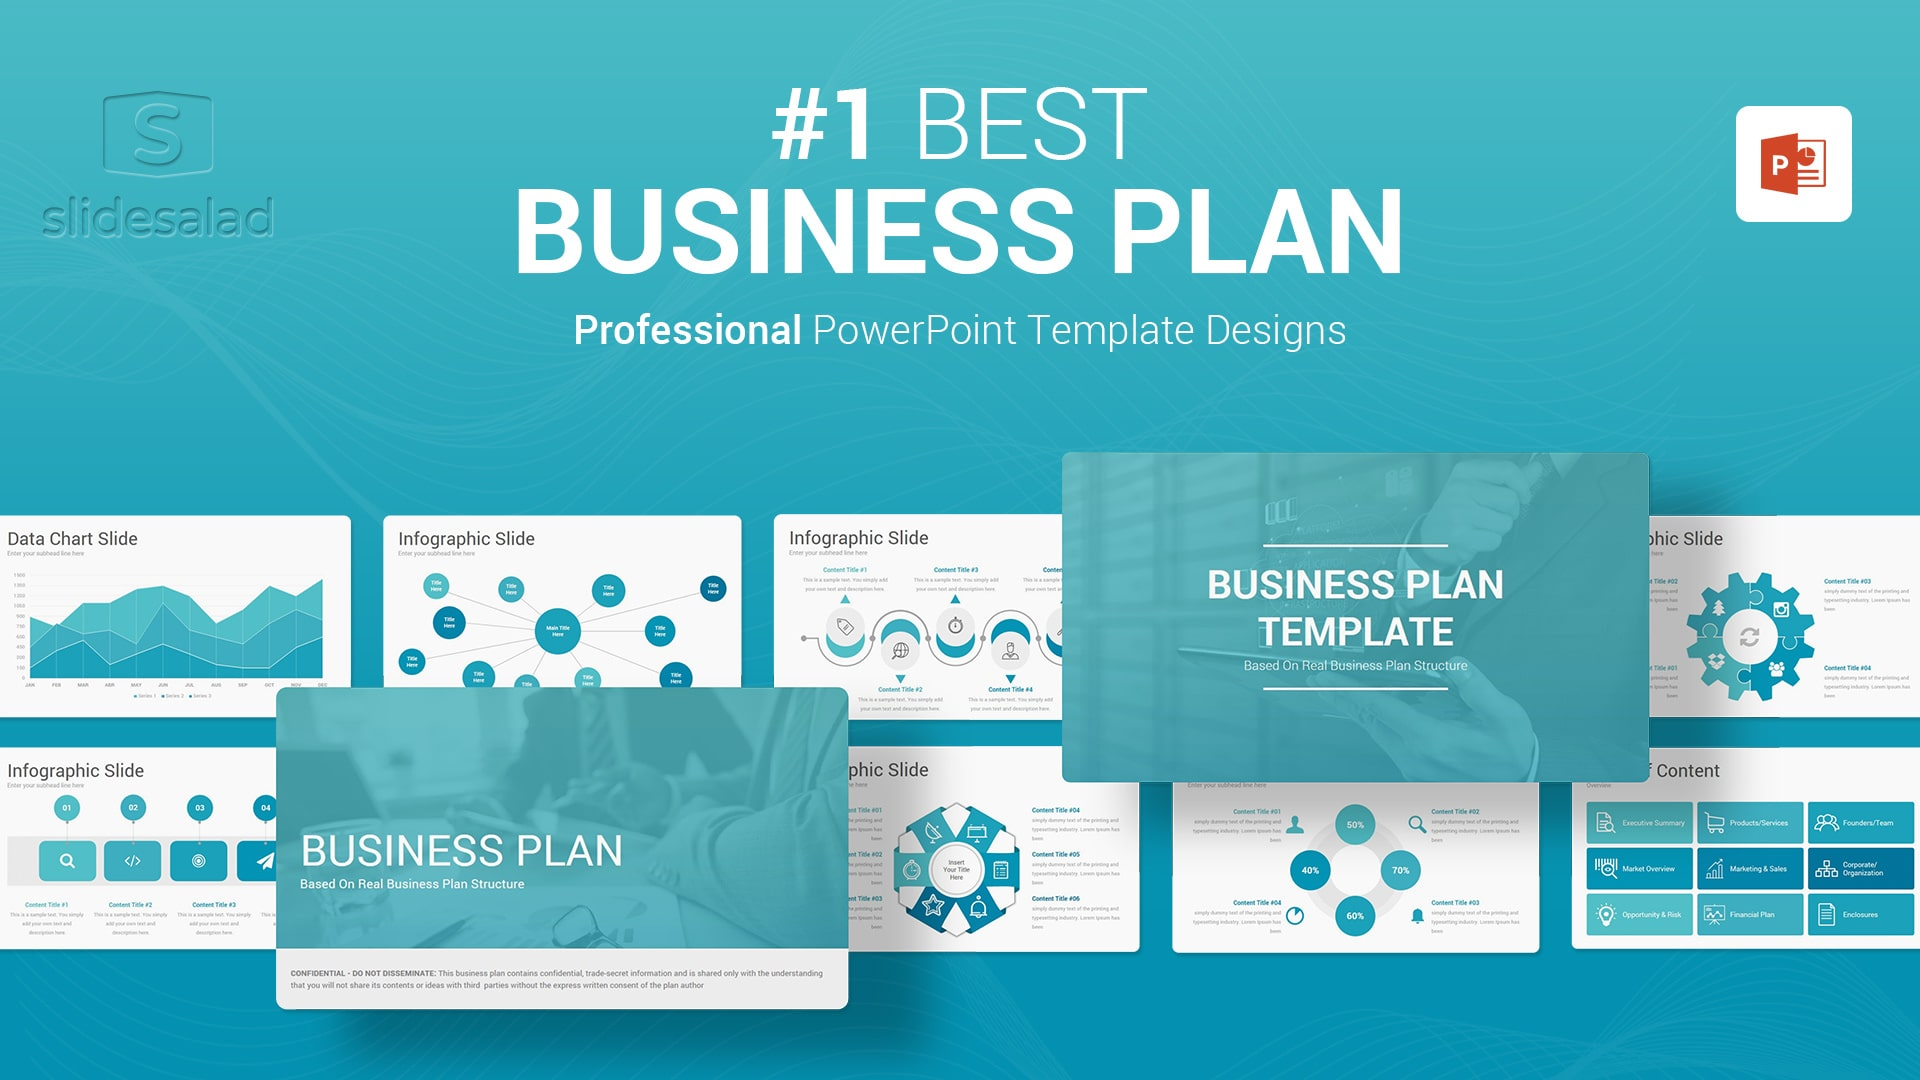 Best Business Plan PowerPoint Presentation Template - Multipurpose PowerPoint Webinar Template Designs